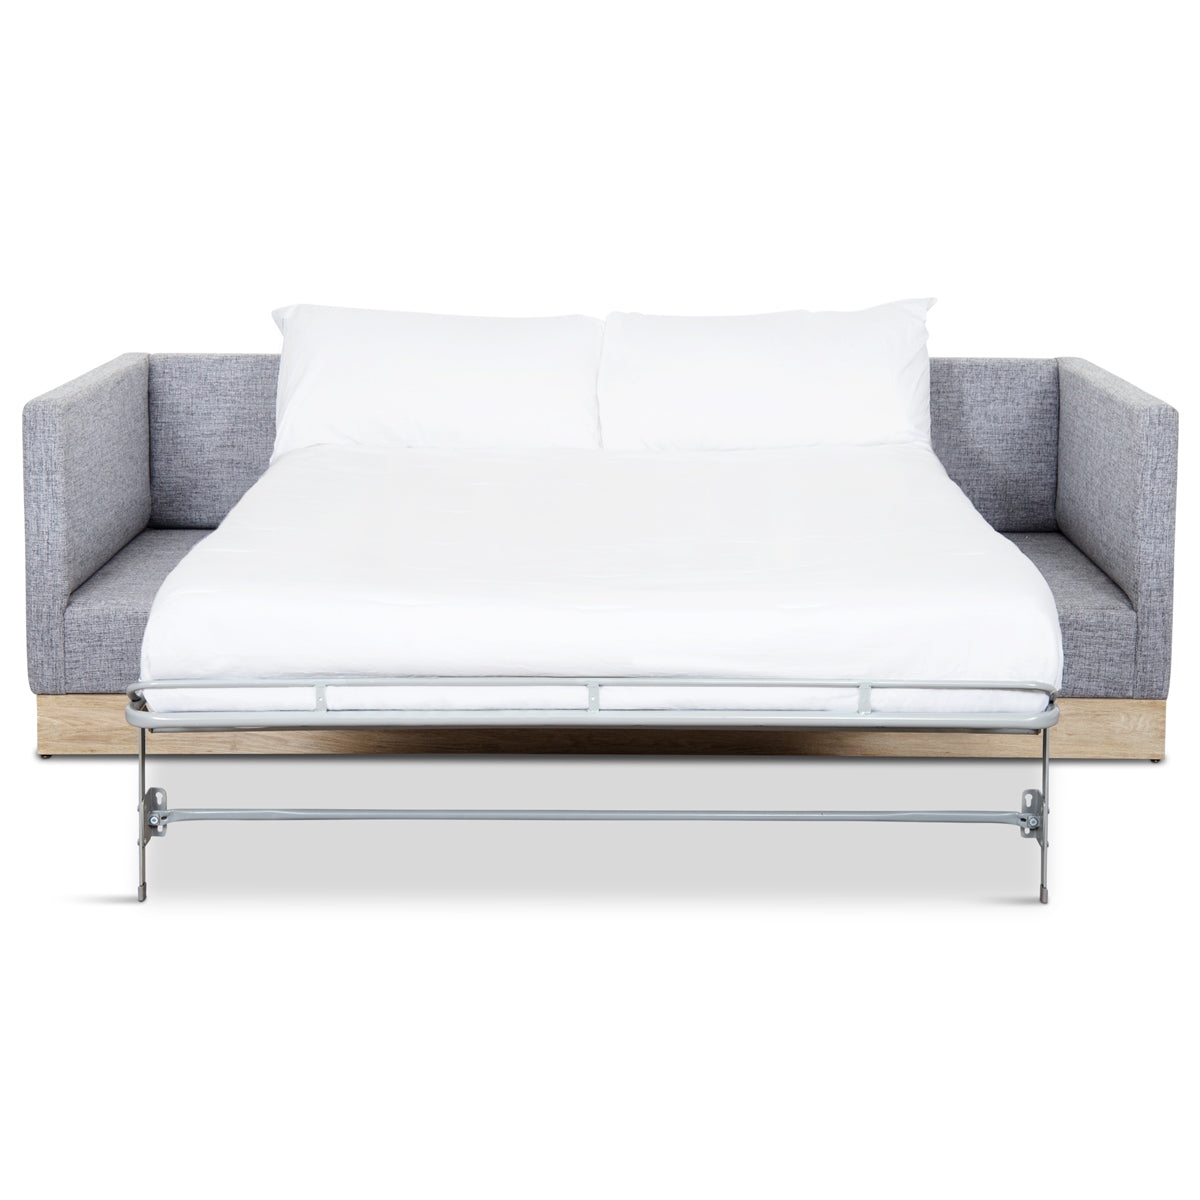 Sorrento Sofa With Pull Out Memory Foam Mattress Modshop